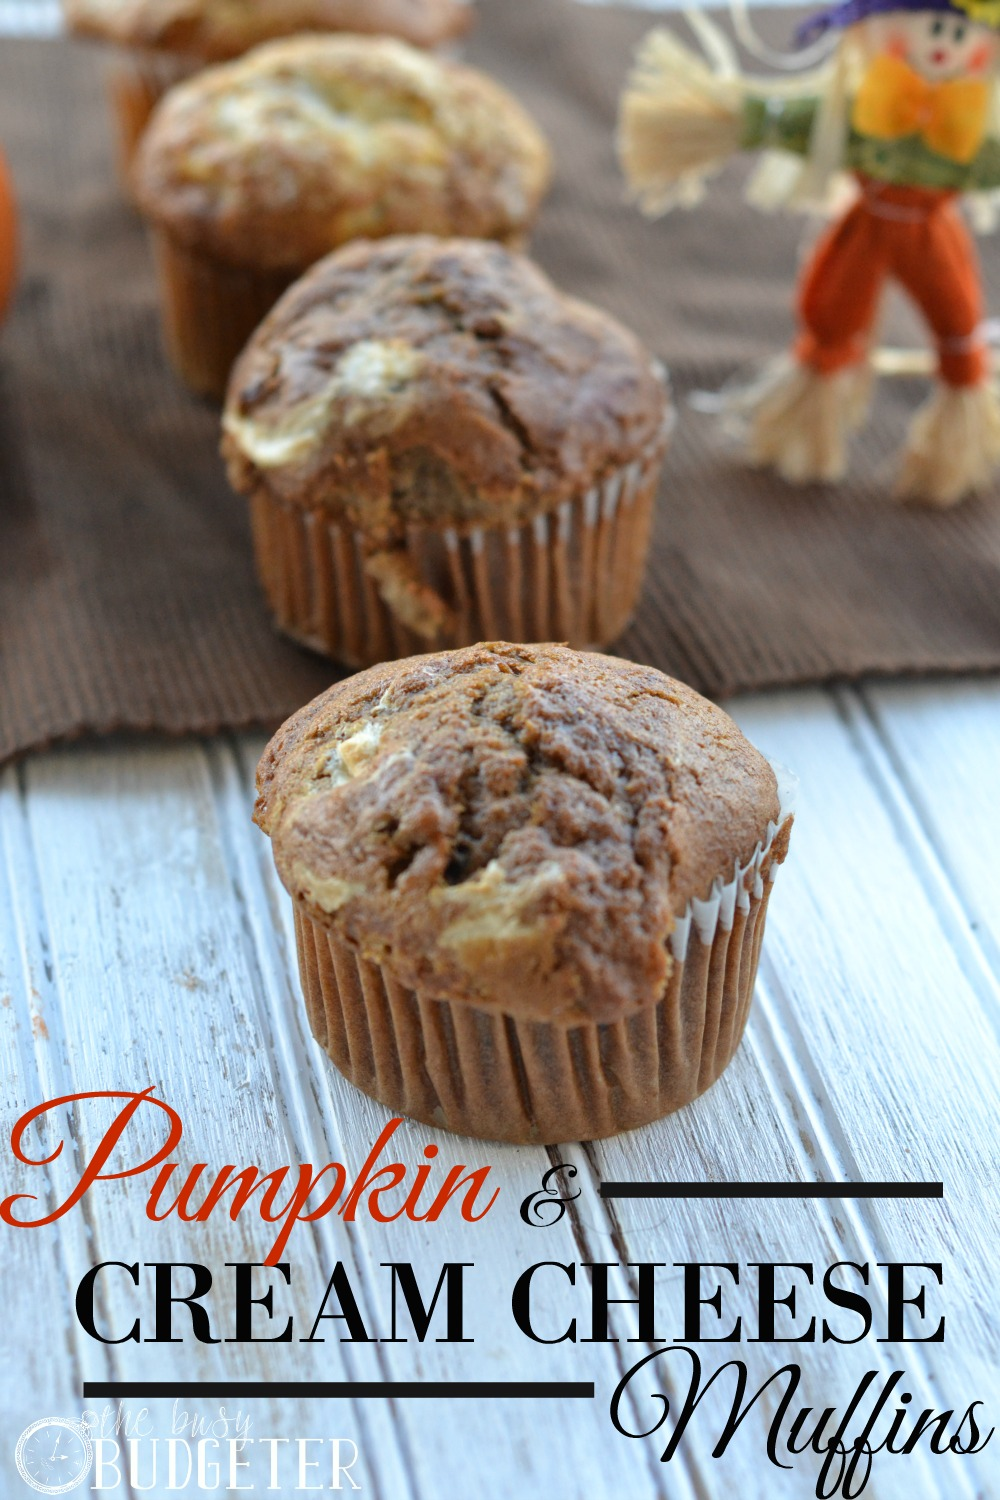 Pumpkin and cream cheese muffins